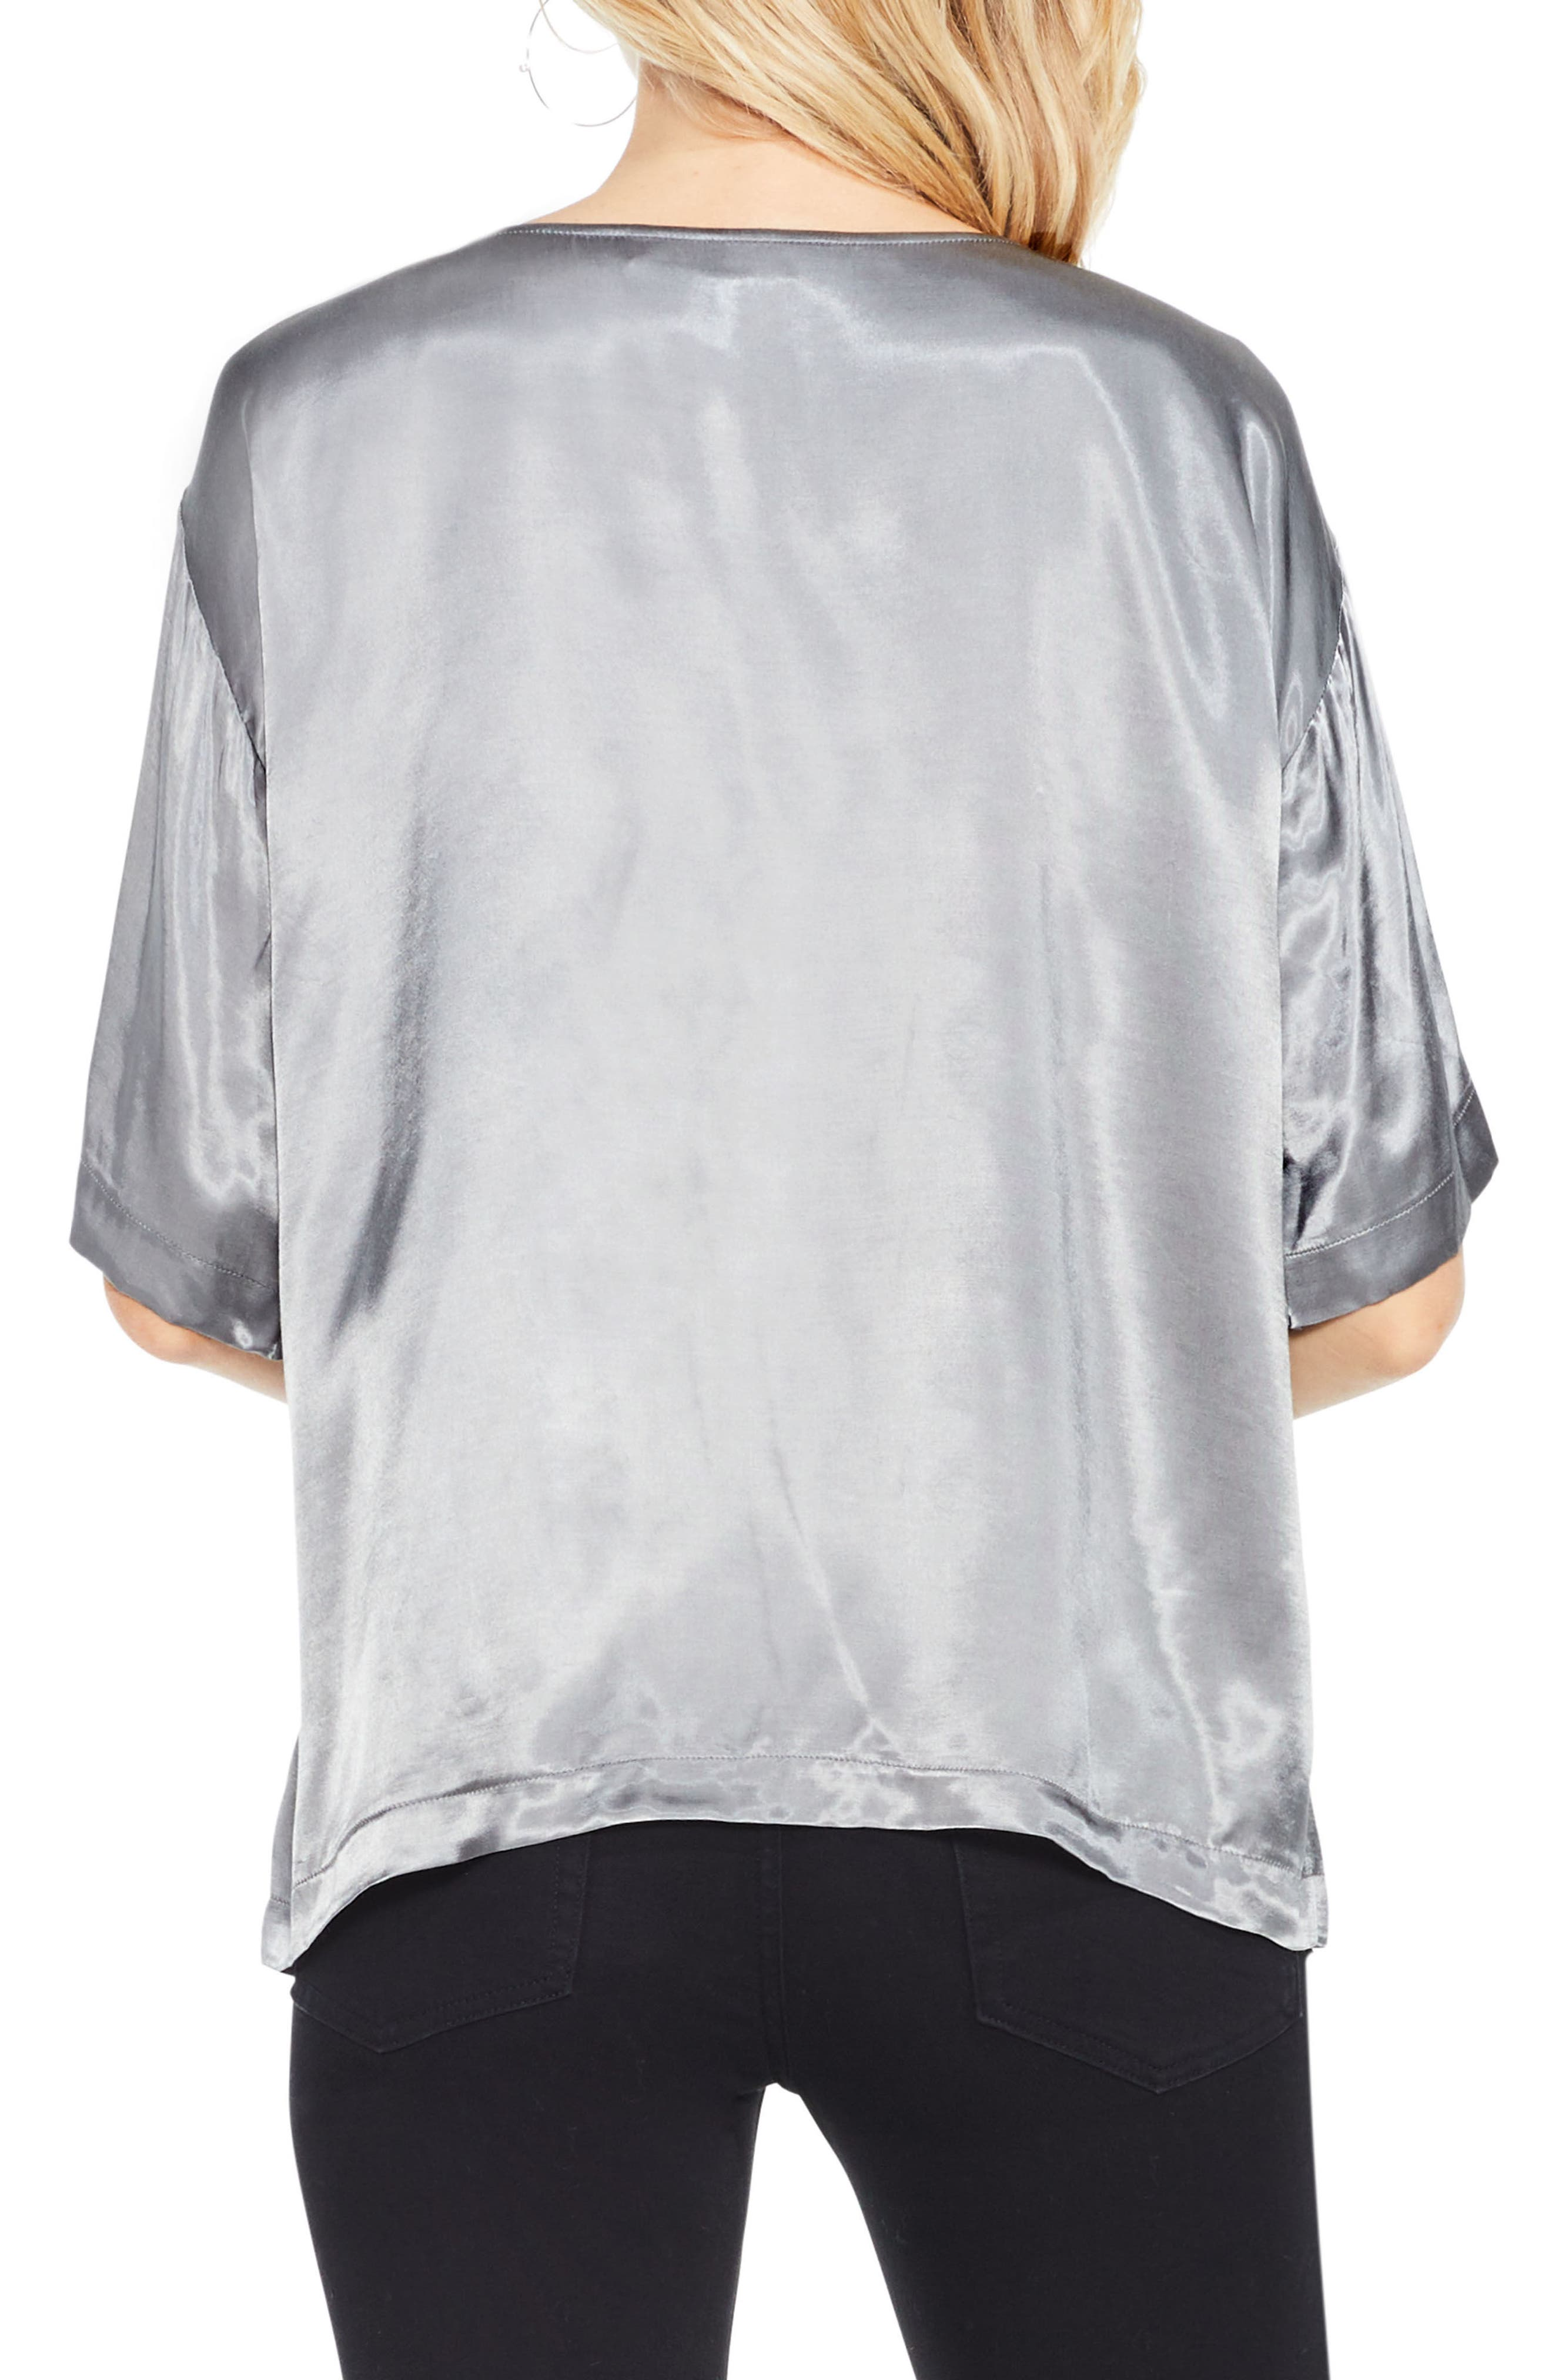 Alternate Image 3  - Two by Vince Camuto Satin Tee